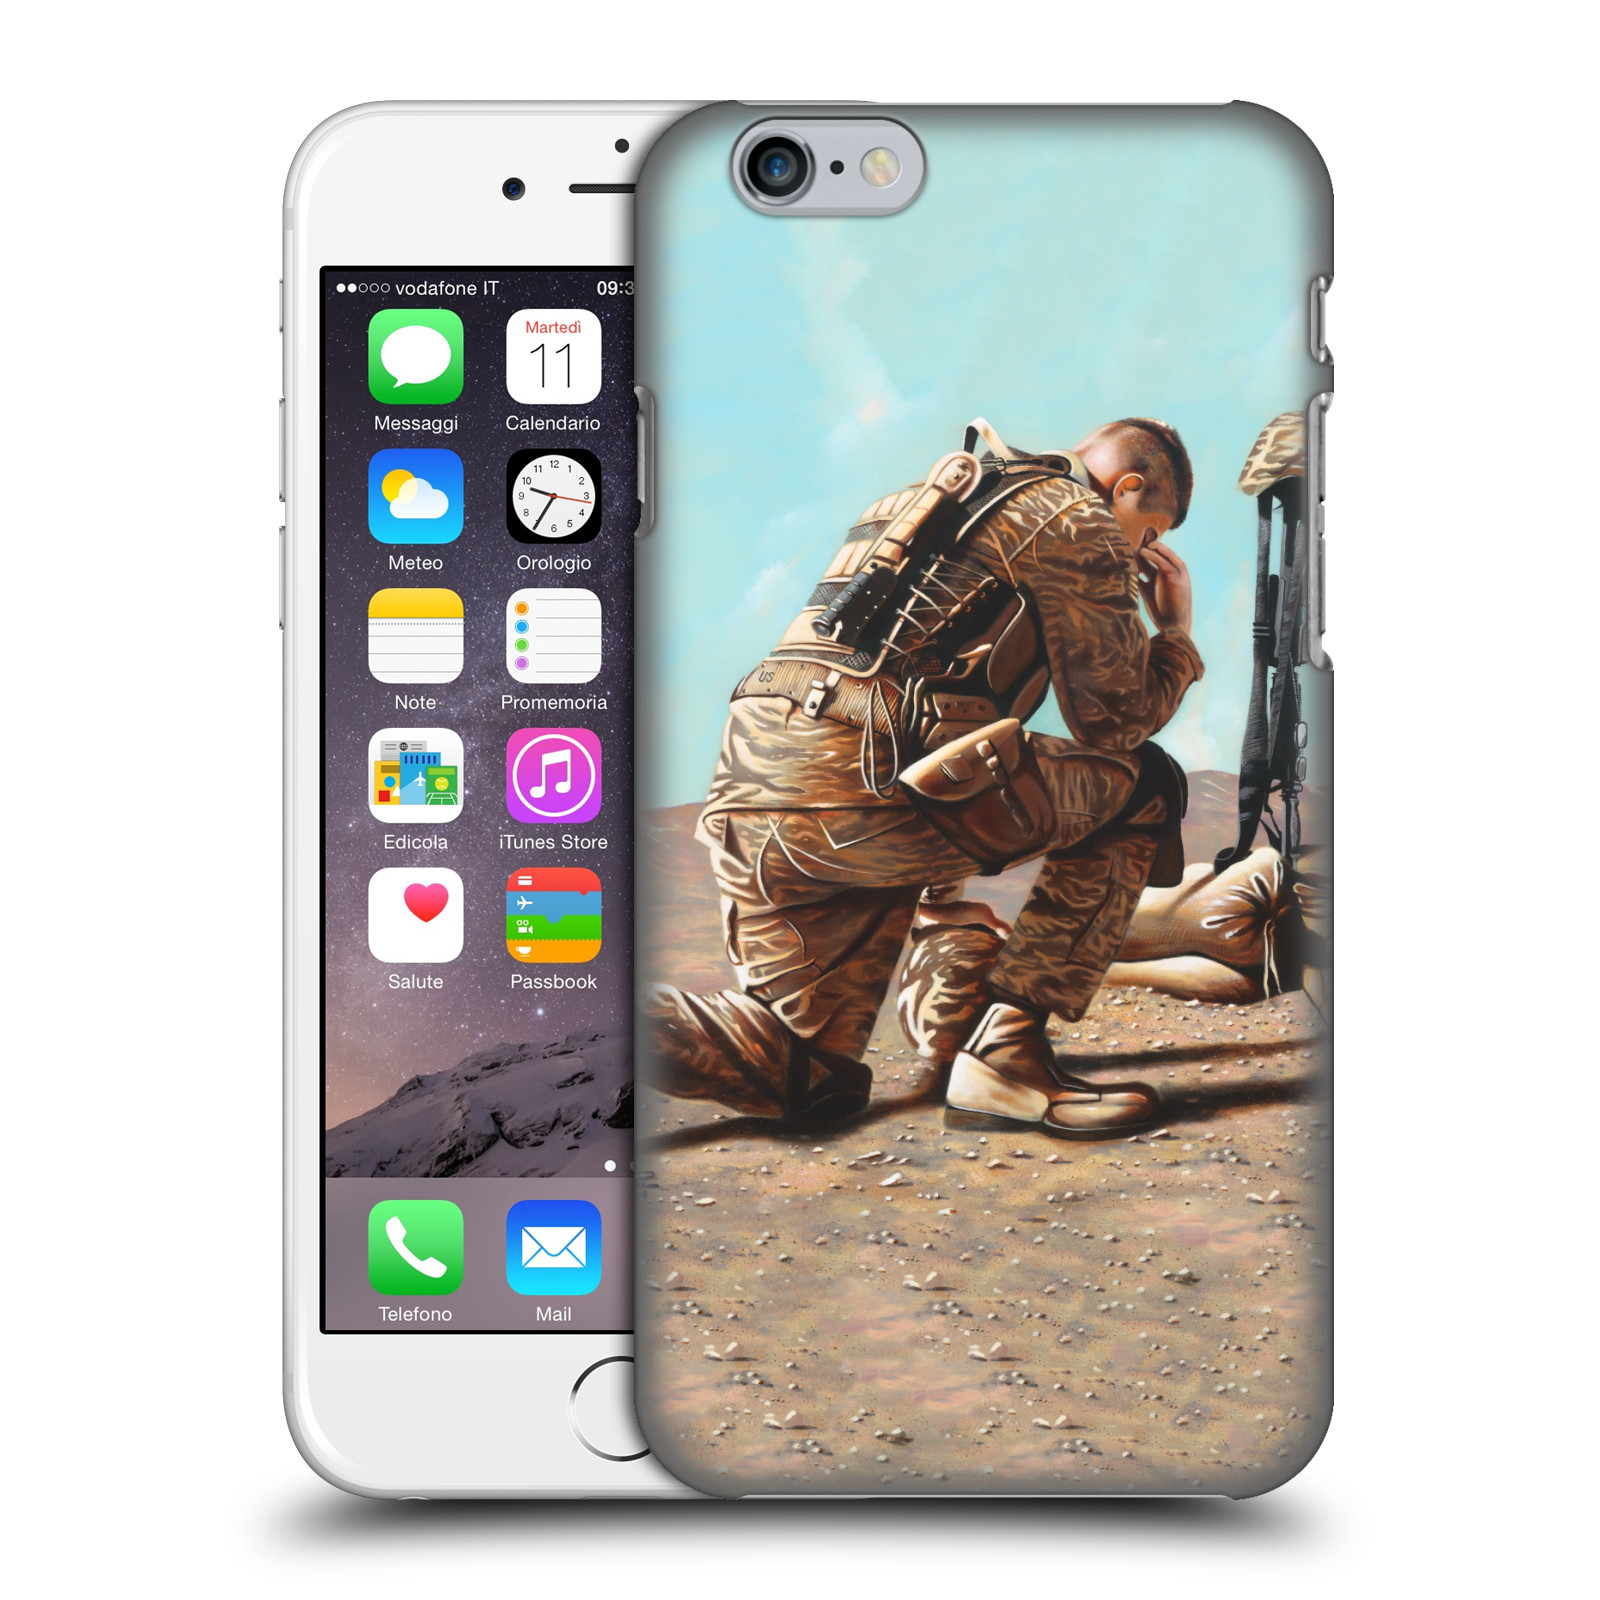 OFFICIEL-GENO-PEOPLES-ART-VIE-ETUI-COQUE-D-039-ARRIERE-POUR-APPLE-iPHONE-TELEPHONES